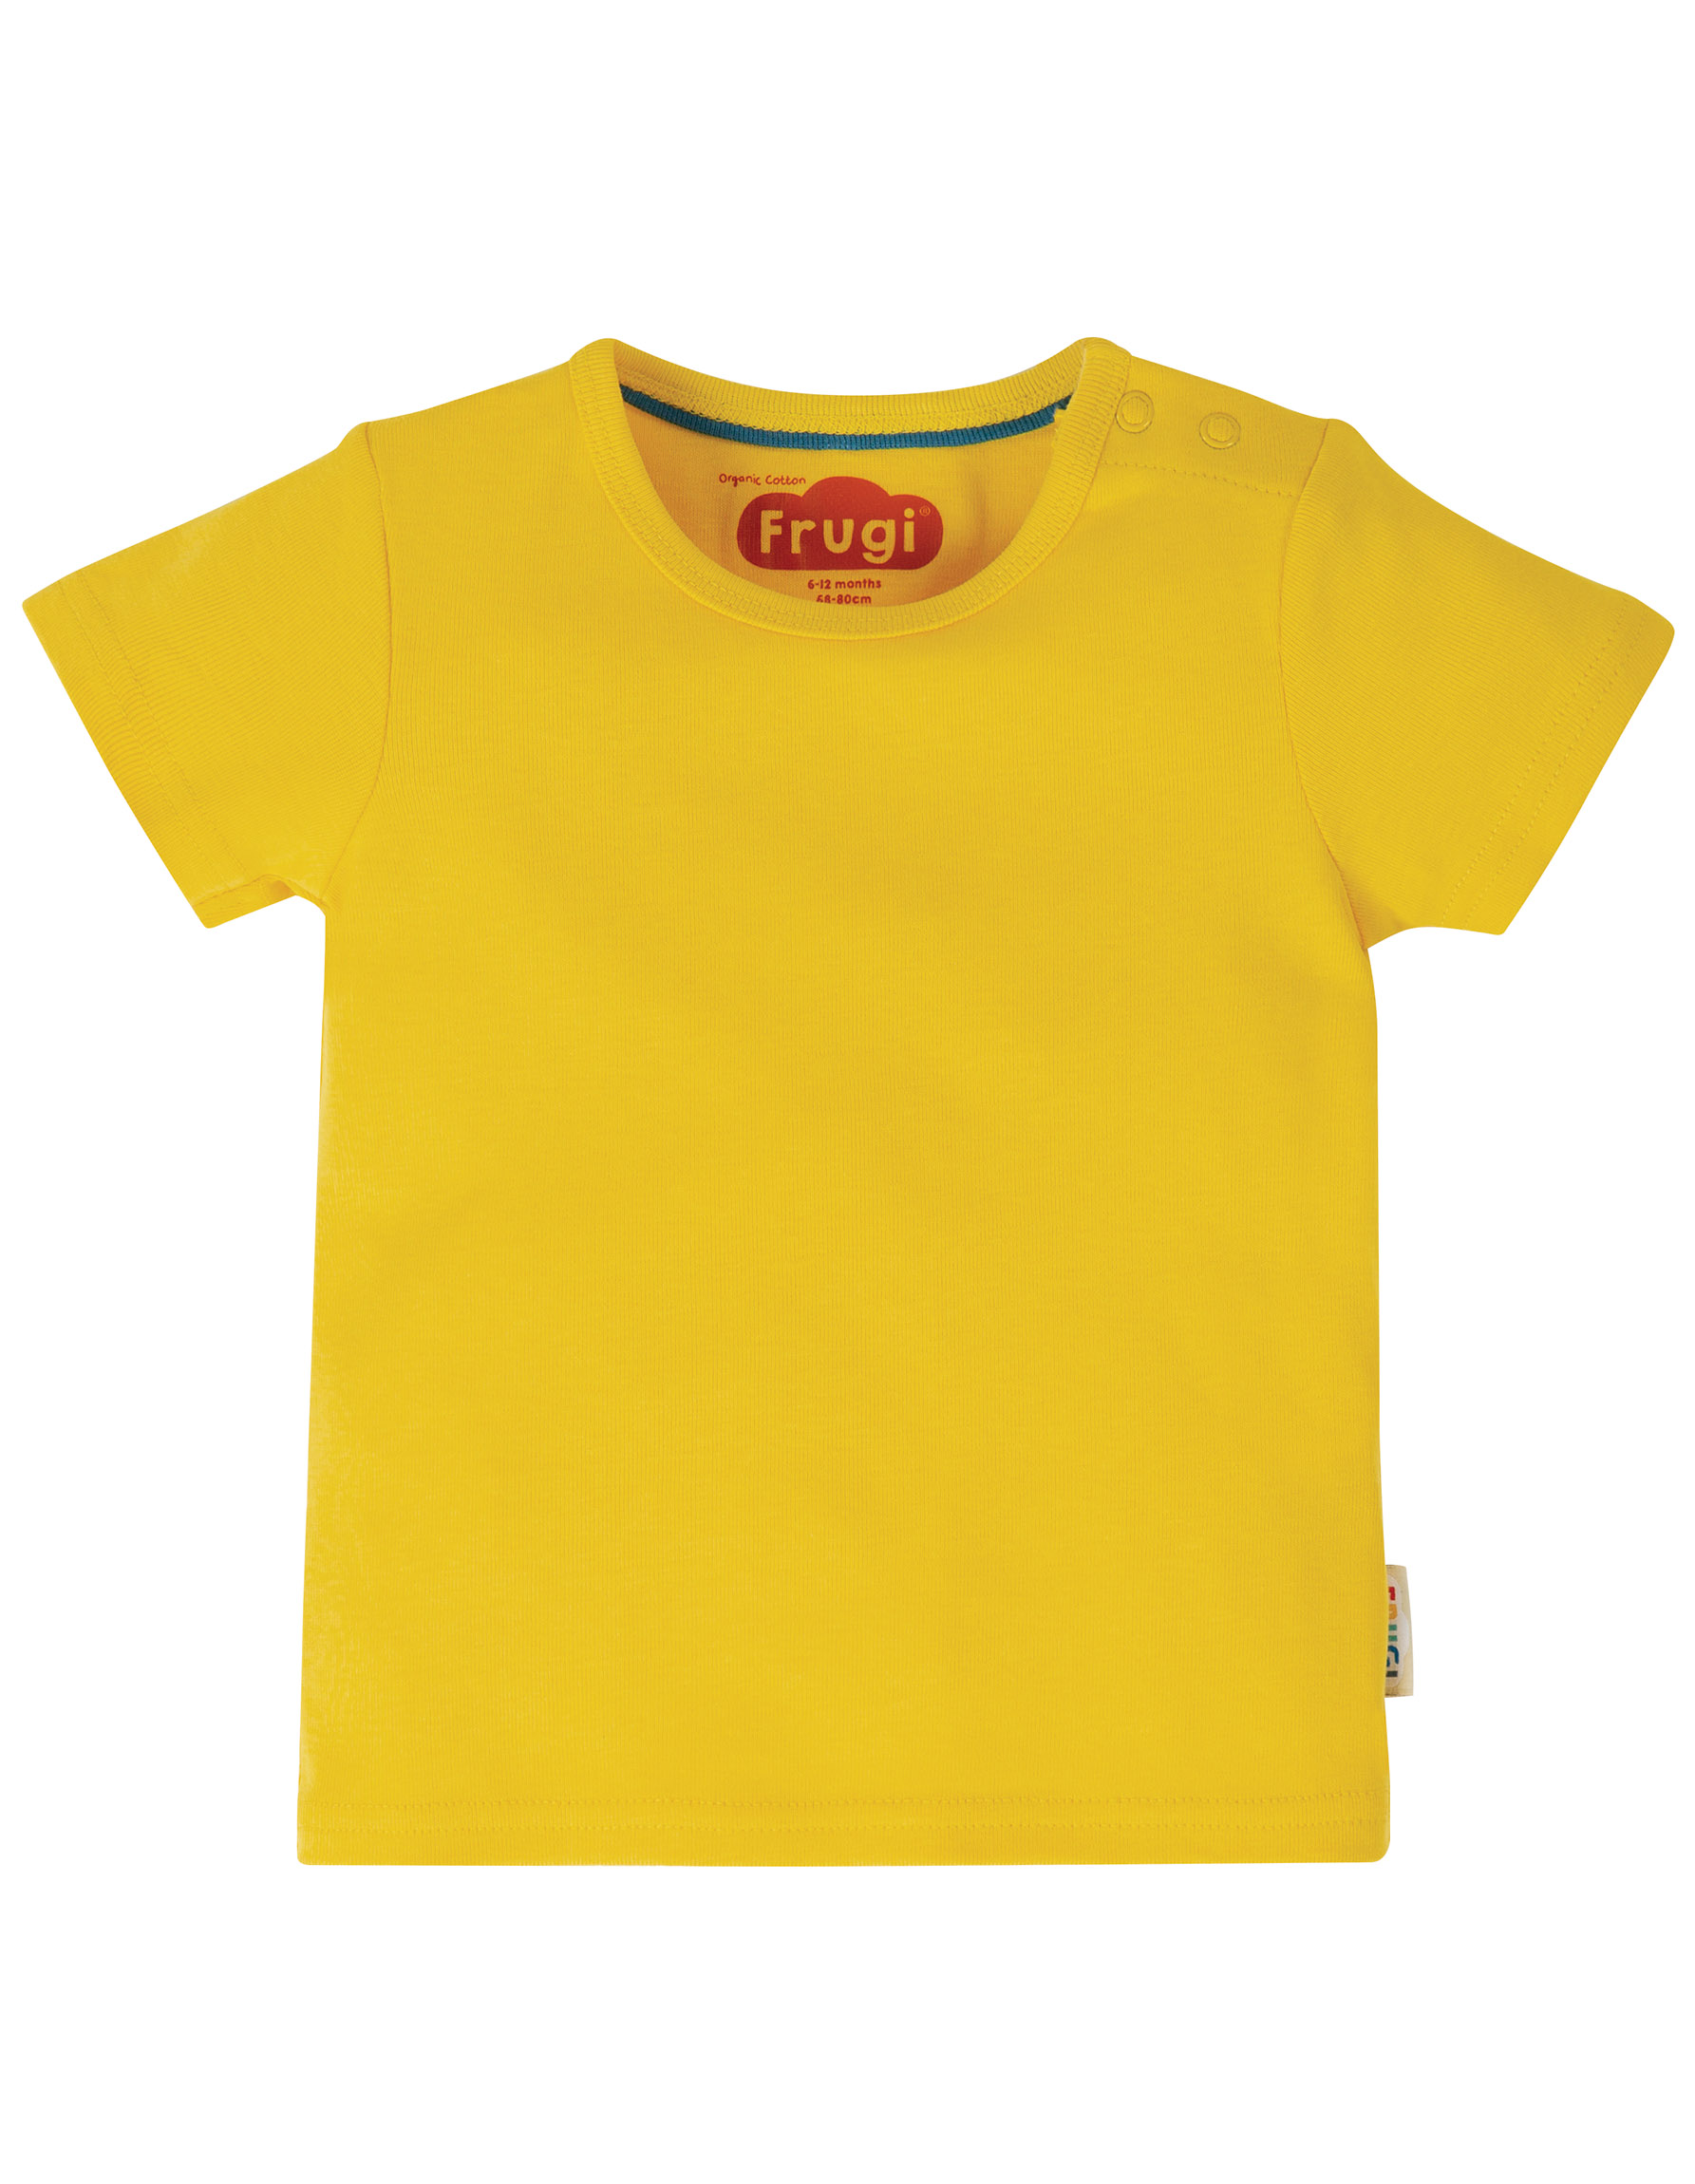 Frugi - Favourite T-shirt - Sunflower